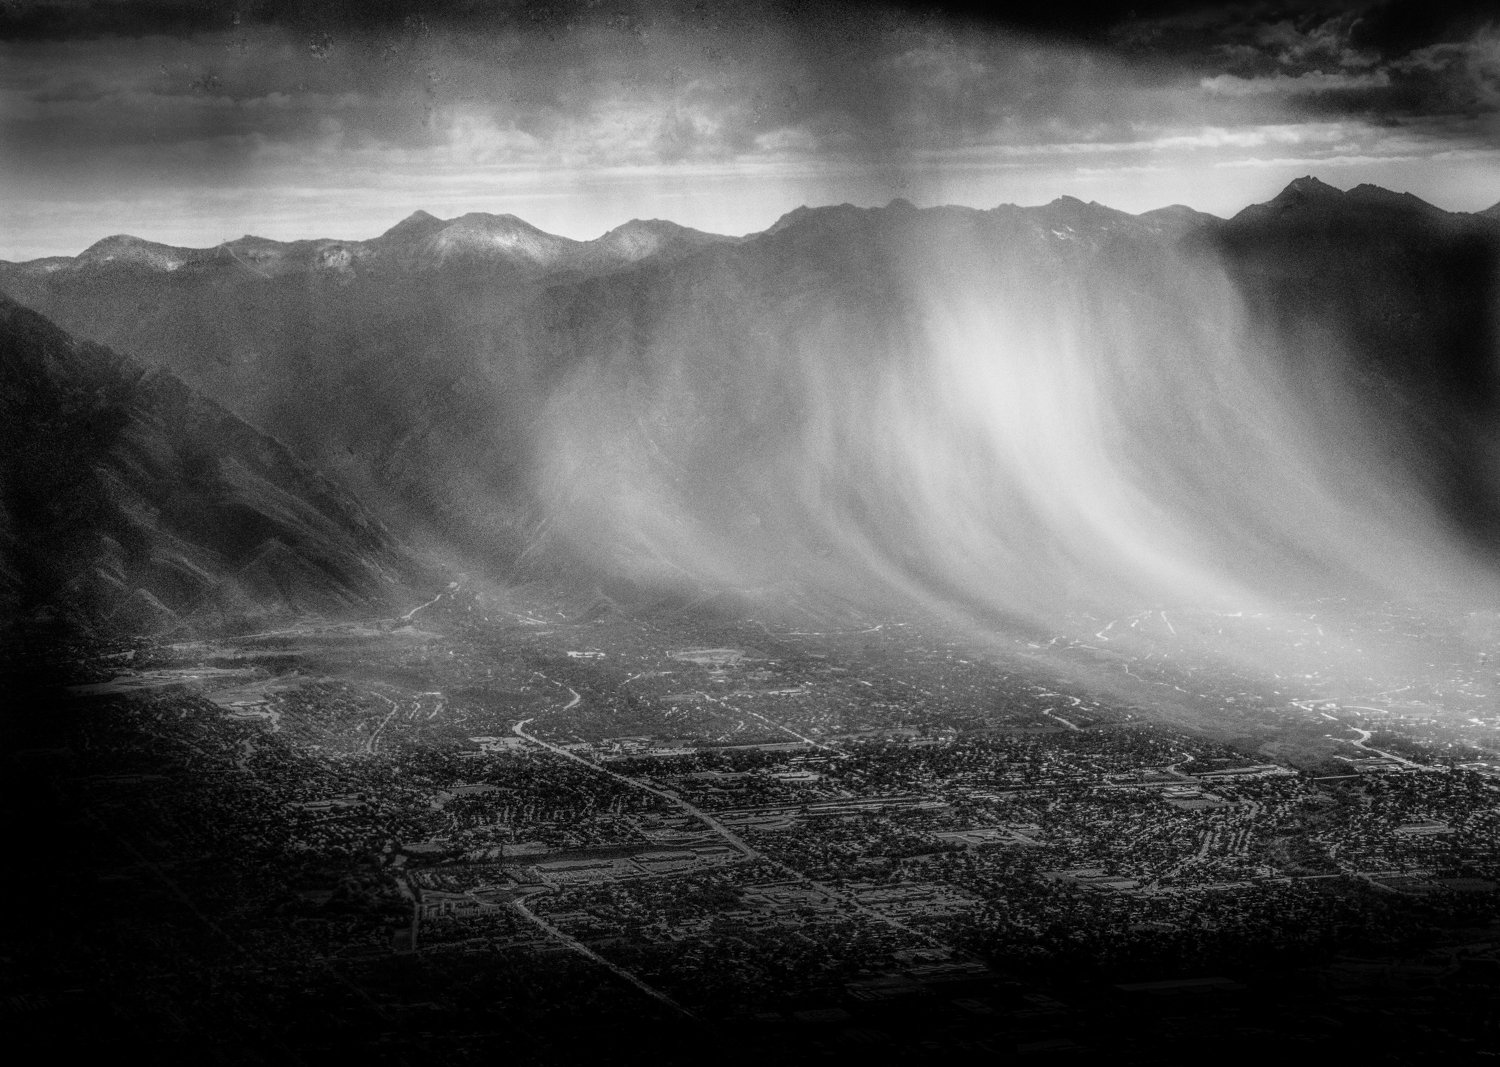 Rainstorm over Salt Lake Valley, Utah © Robert Welkie 2016